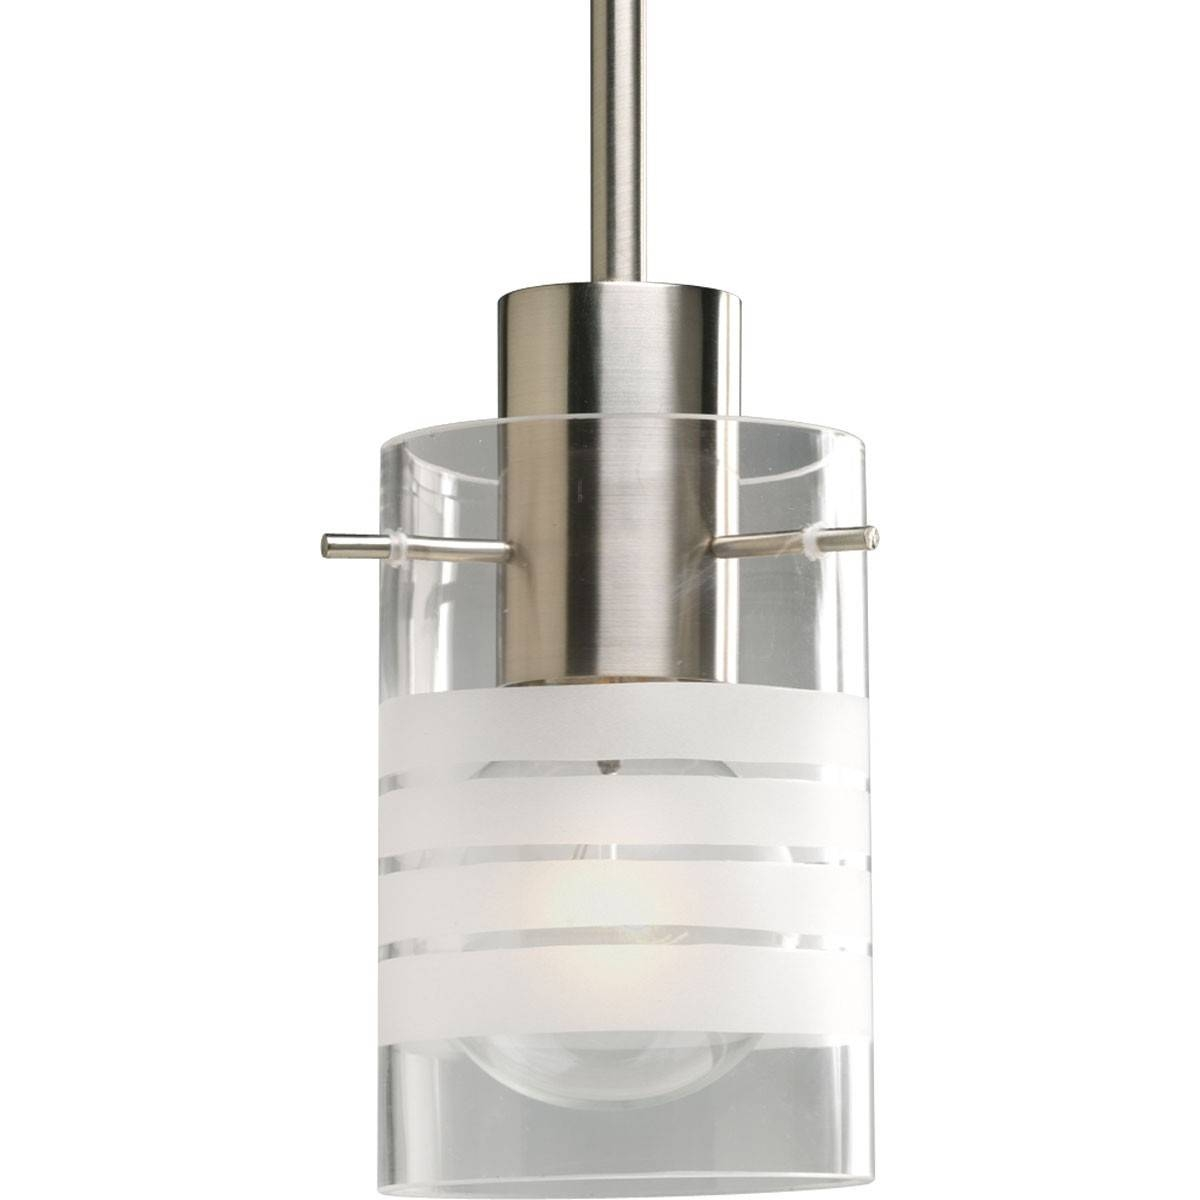 Accessories : Hanging Light Fixtures With Smartly Corbett Lighting throughout Corbett Vertigo Small Pendant Lights (Image 2 of 15)